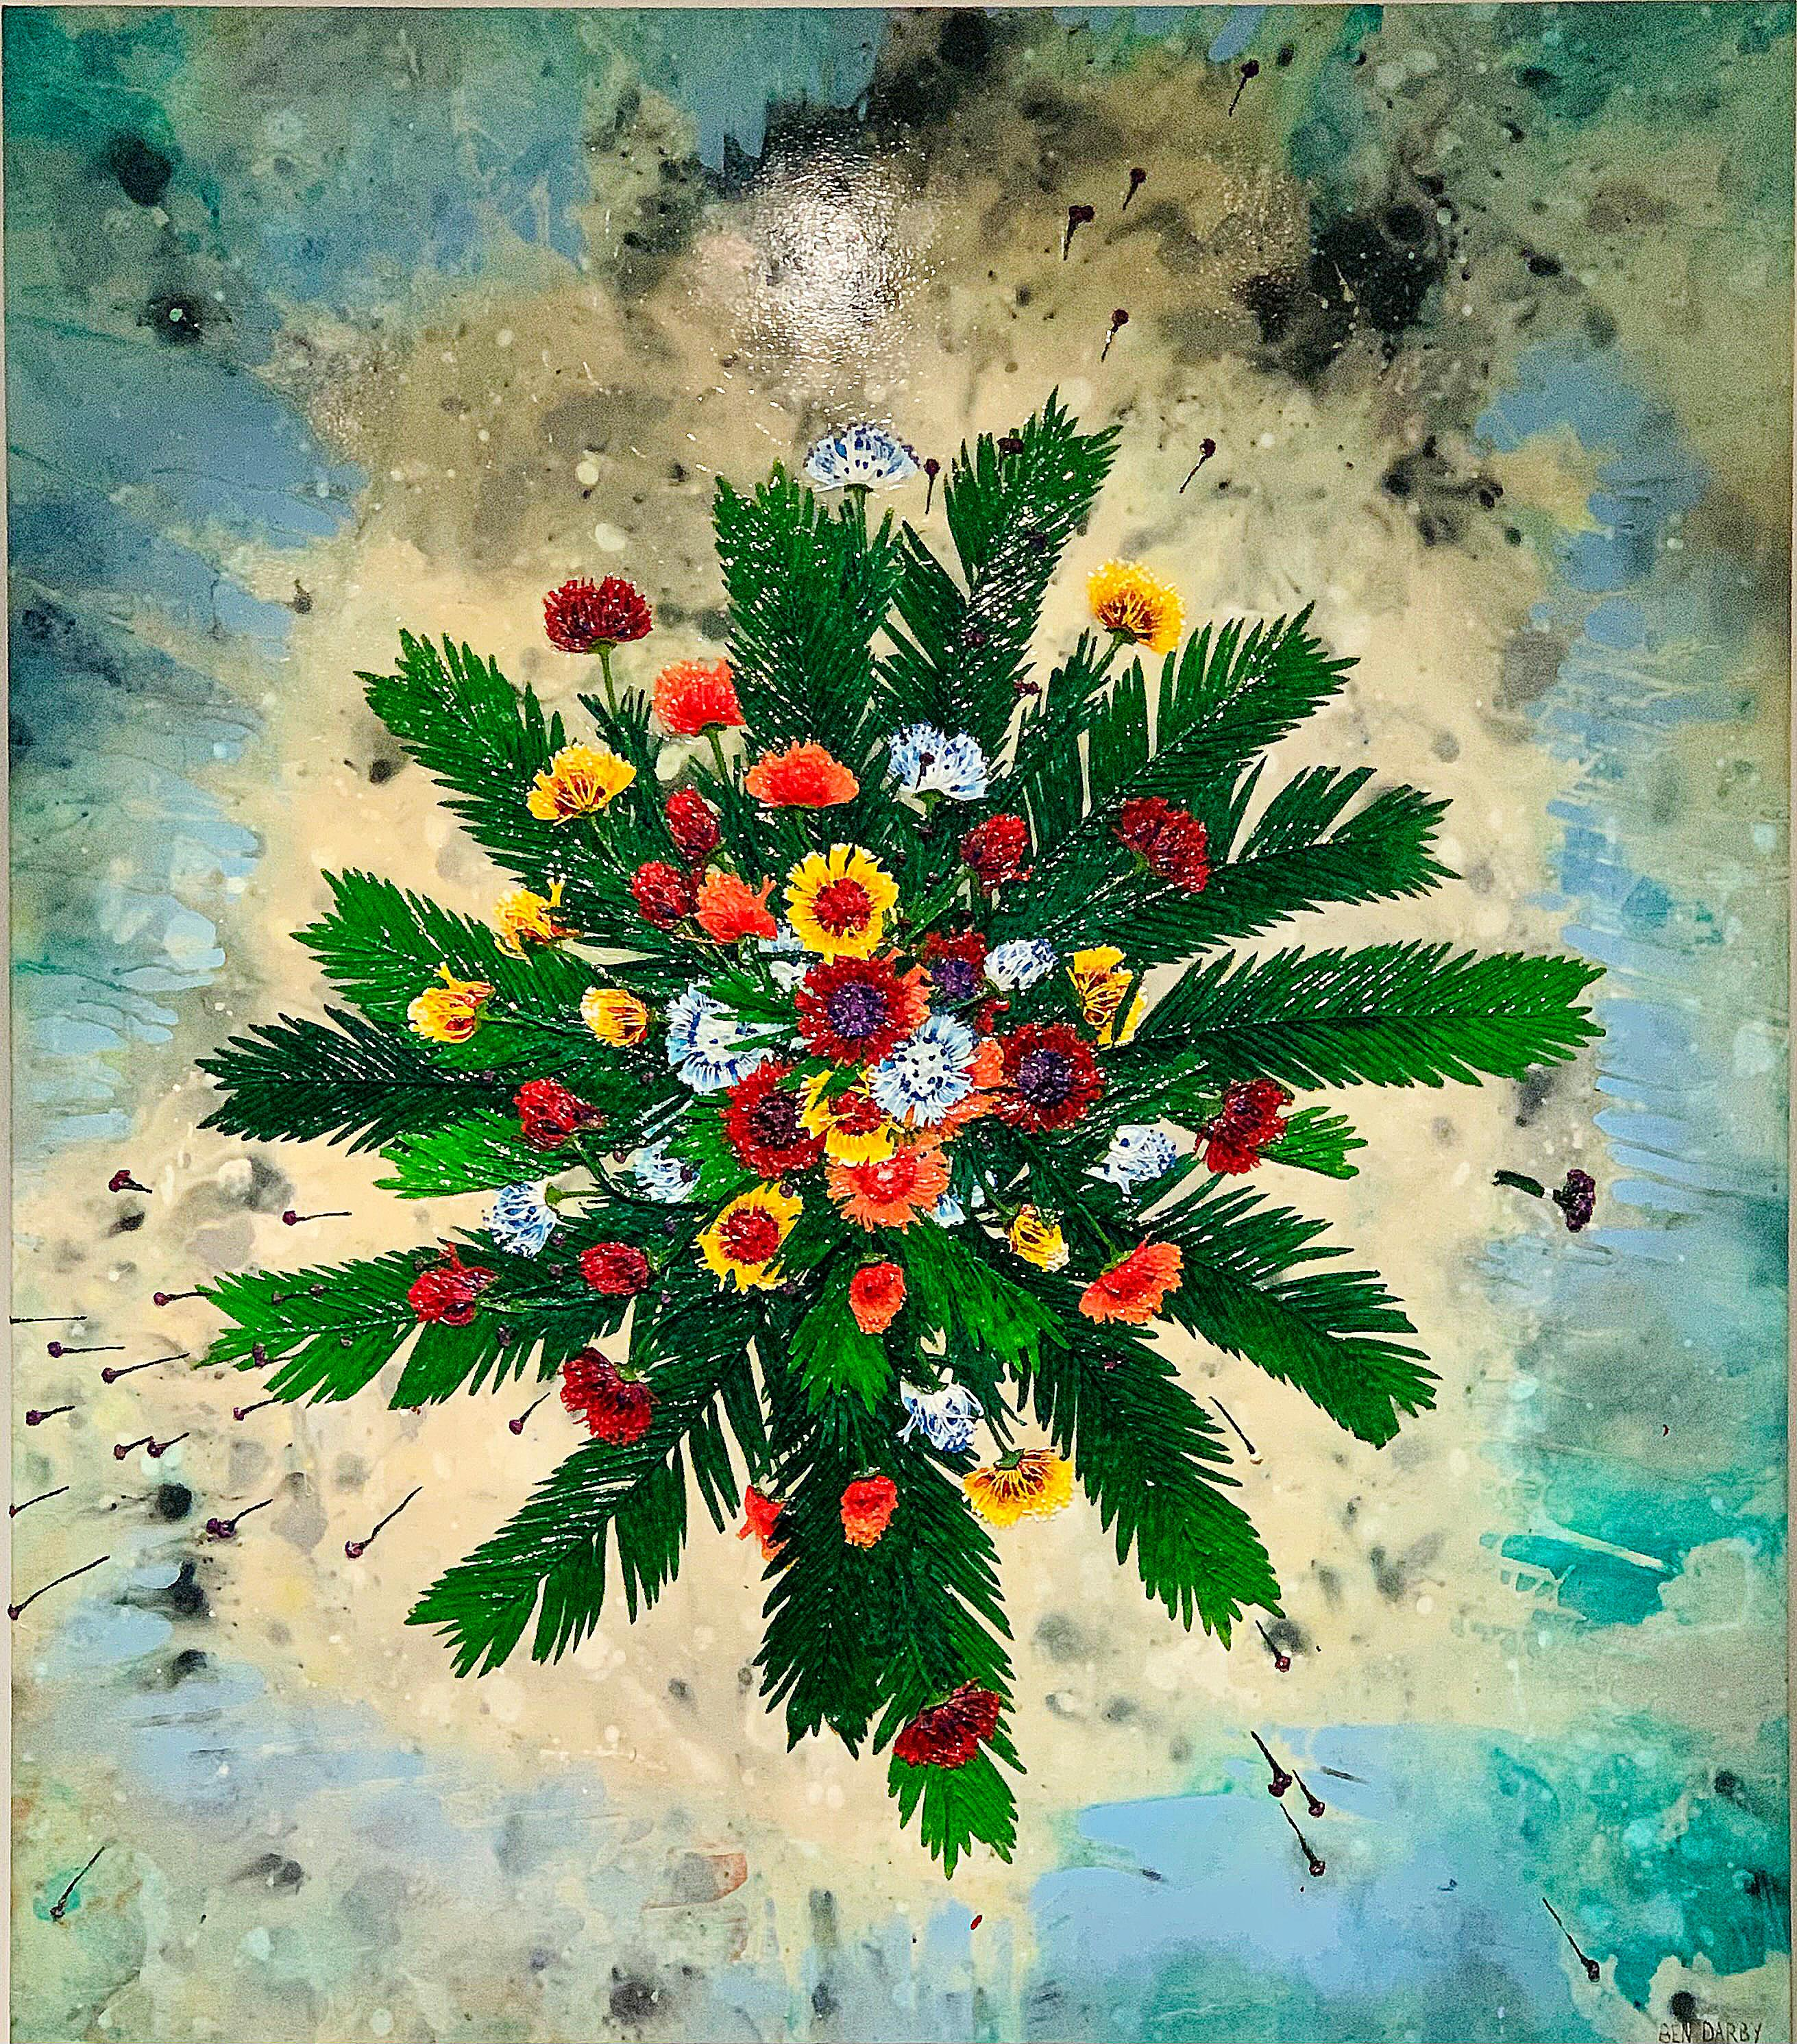 Protea Ball, acrylic on canvas large painting by Ben Darby, bright, texture